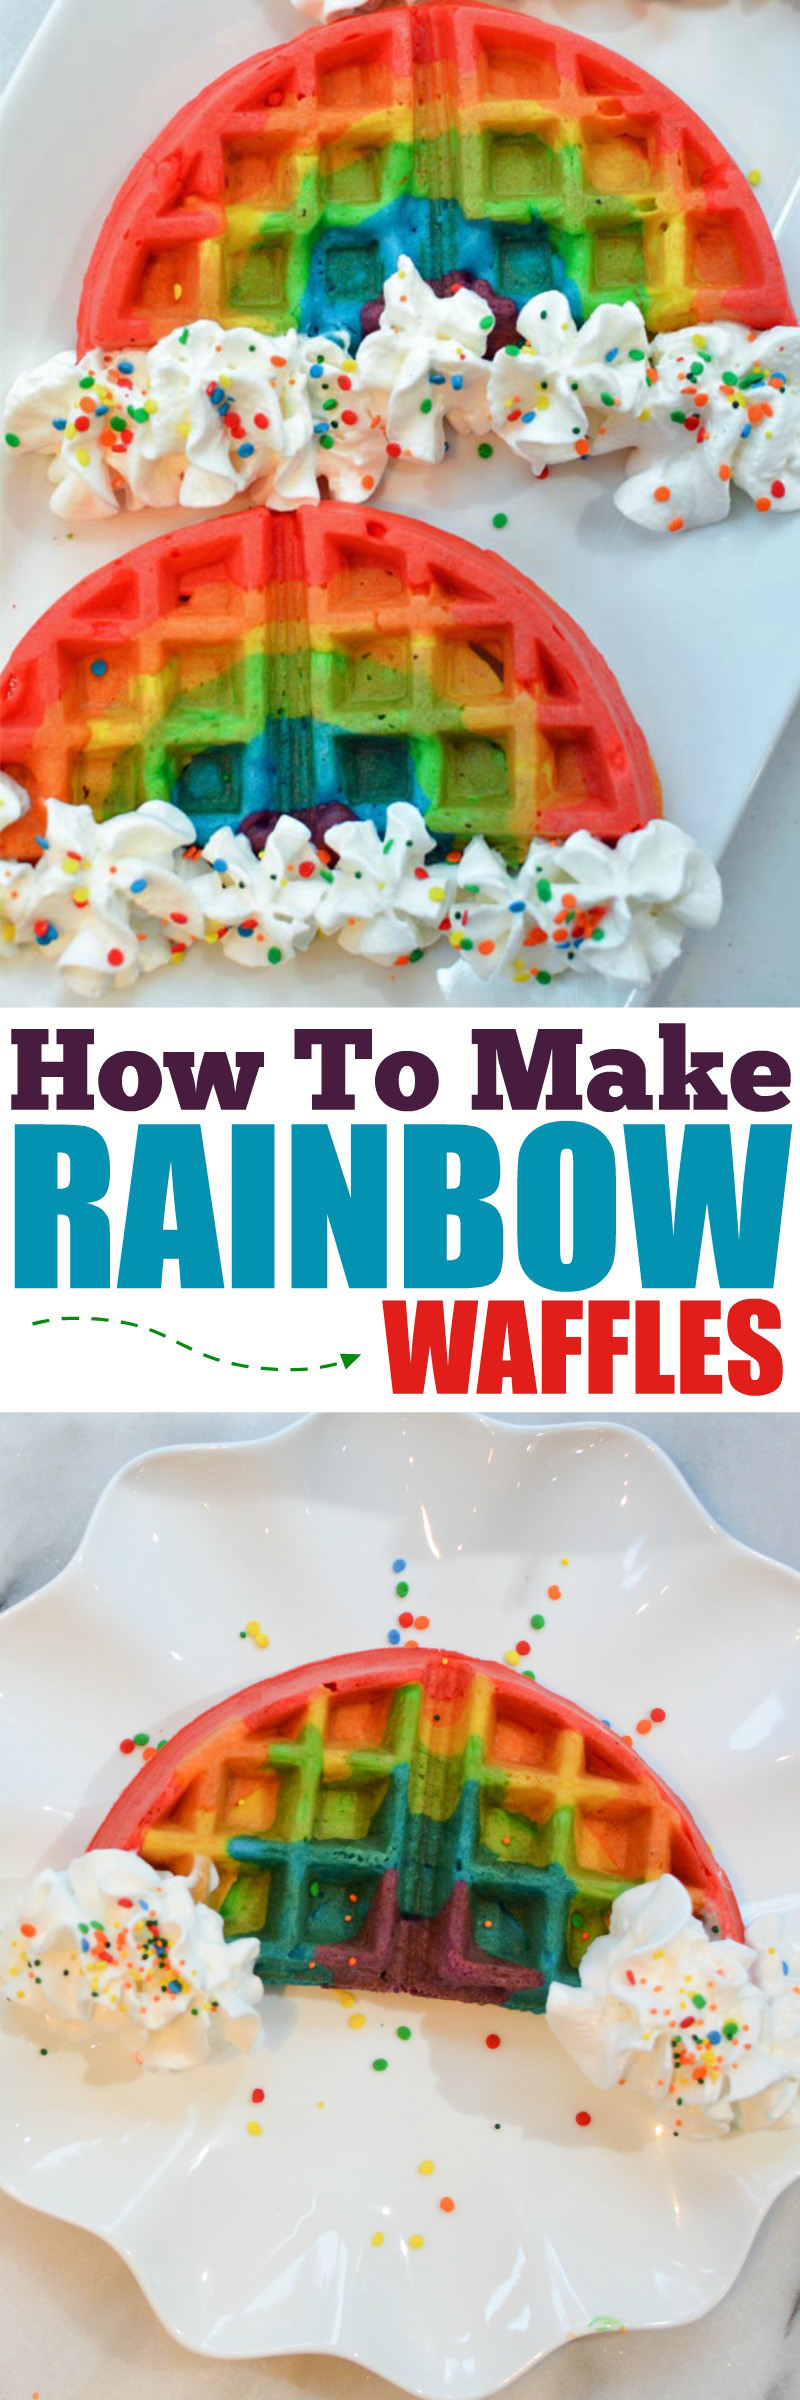 how to make rainbow waffles